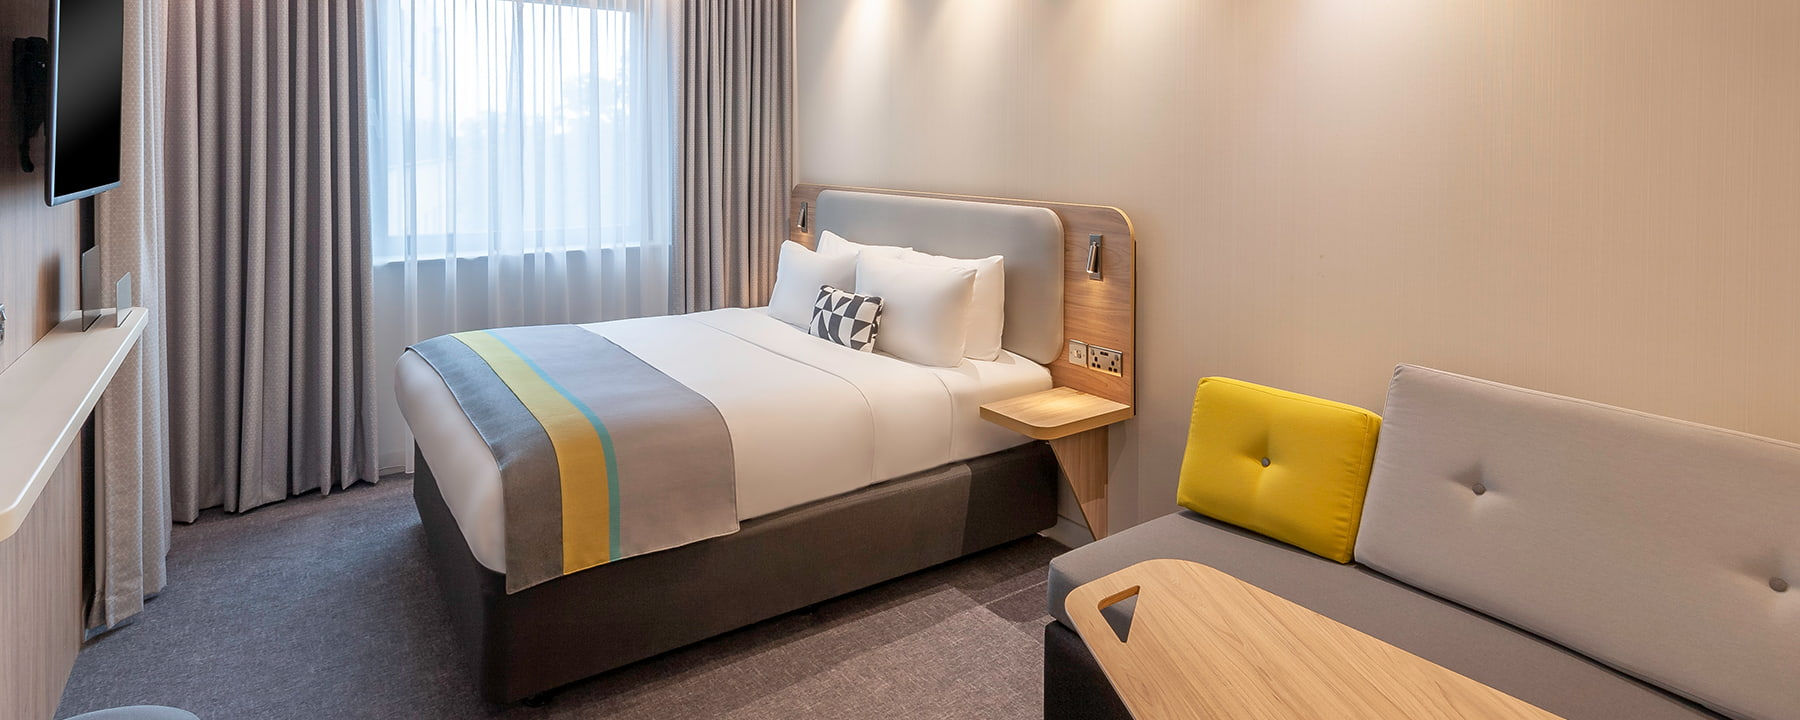 Dublin Airport hotel double bedroom